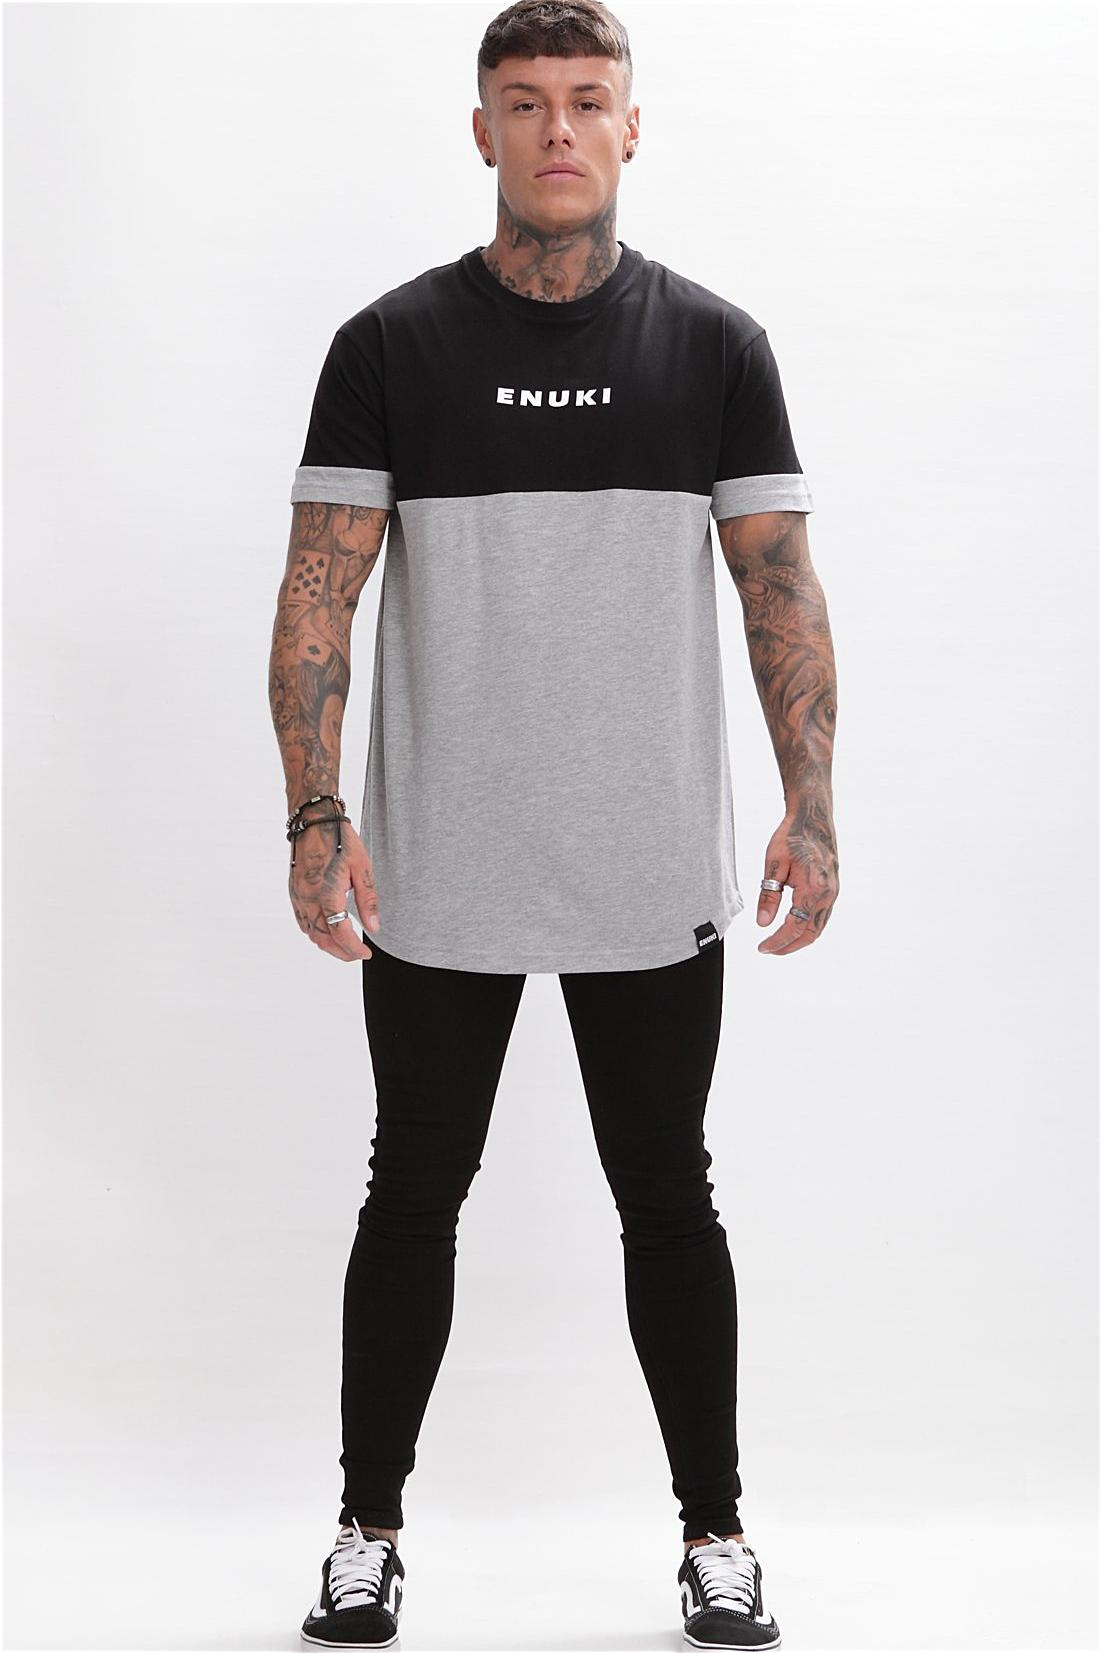 Enuki London Nasai Drop Shoulder Tee - Black/Grey - 1